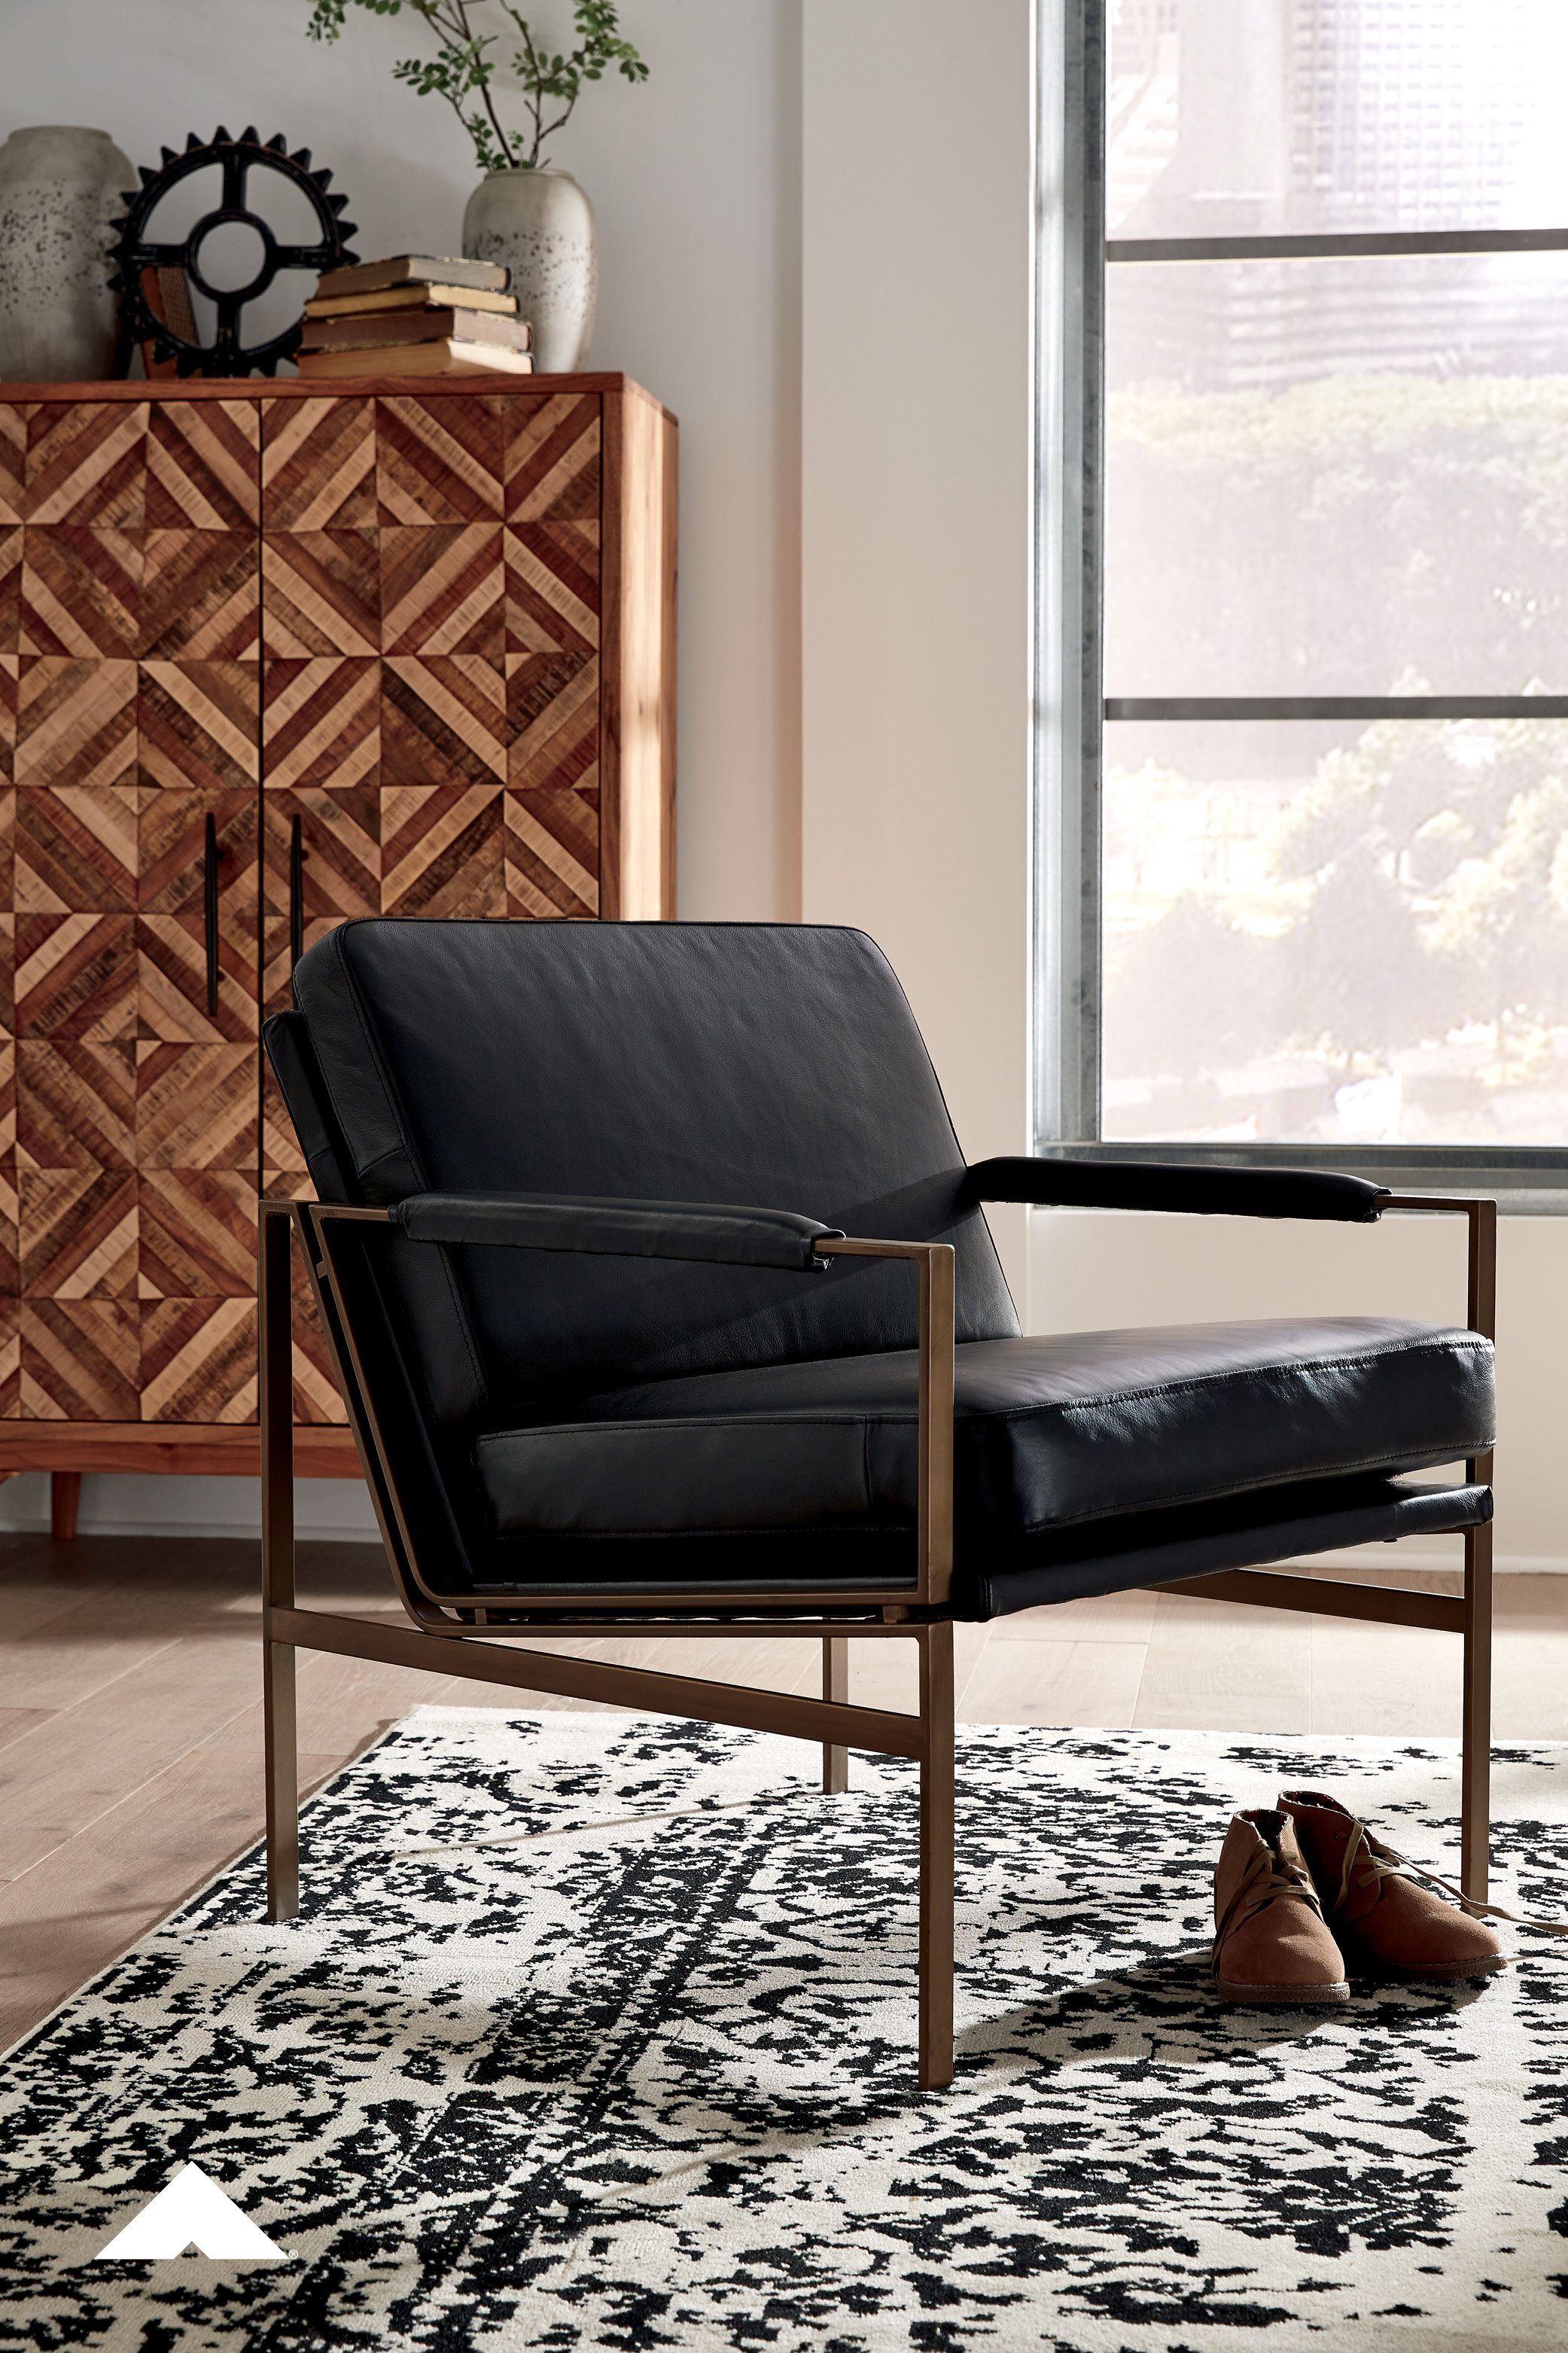 Puckman Black Accent Chair By Ashley Furniture With Its Ultra Modern Vibe And Ultra Indulgent Feel This Accent Chair Impress In 2020 With Images Accent Chairs Black Accent Chair